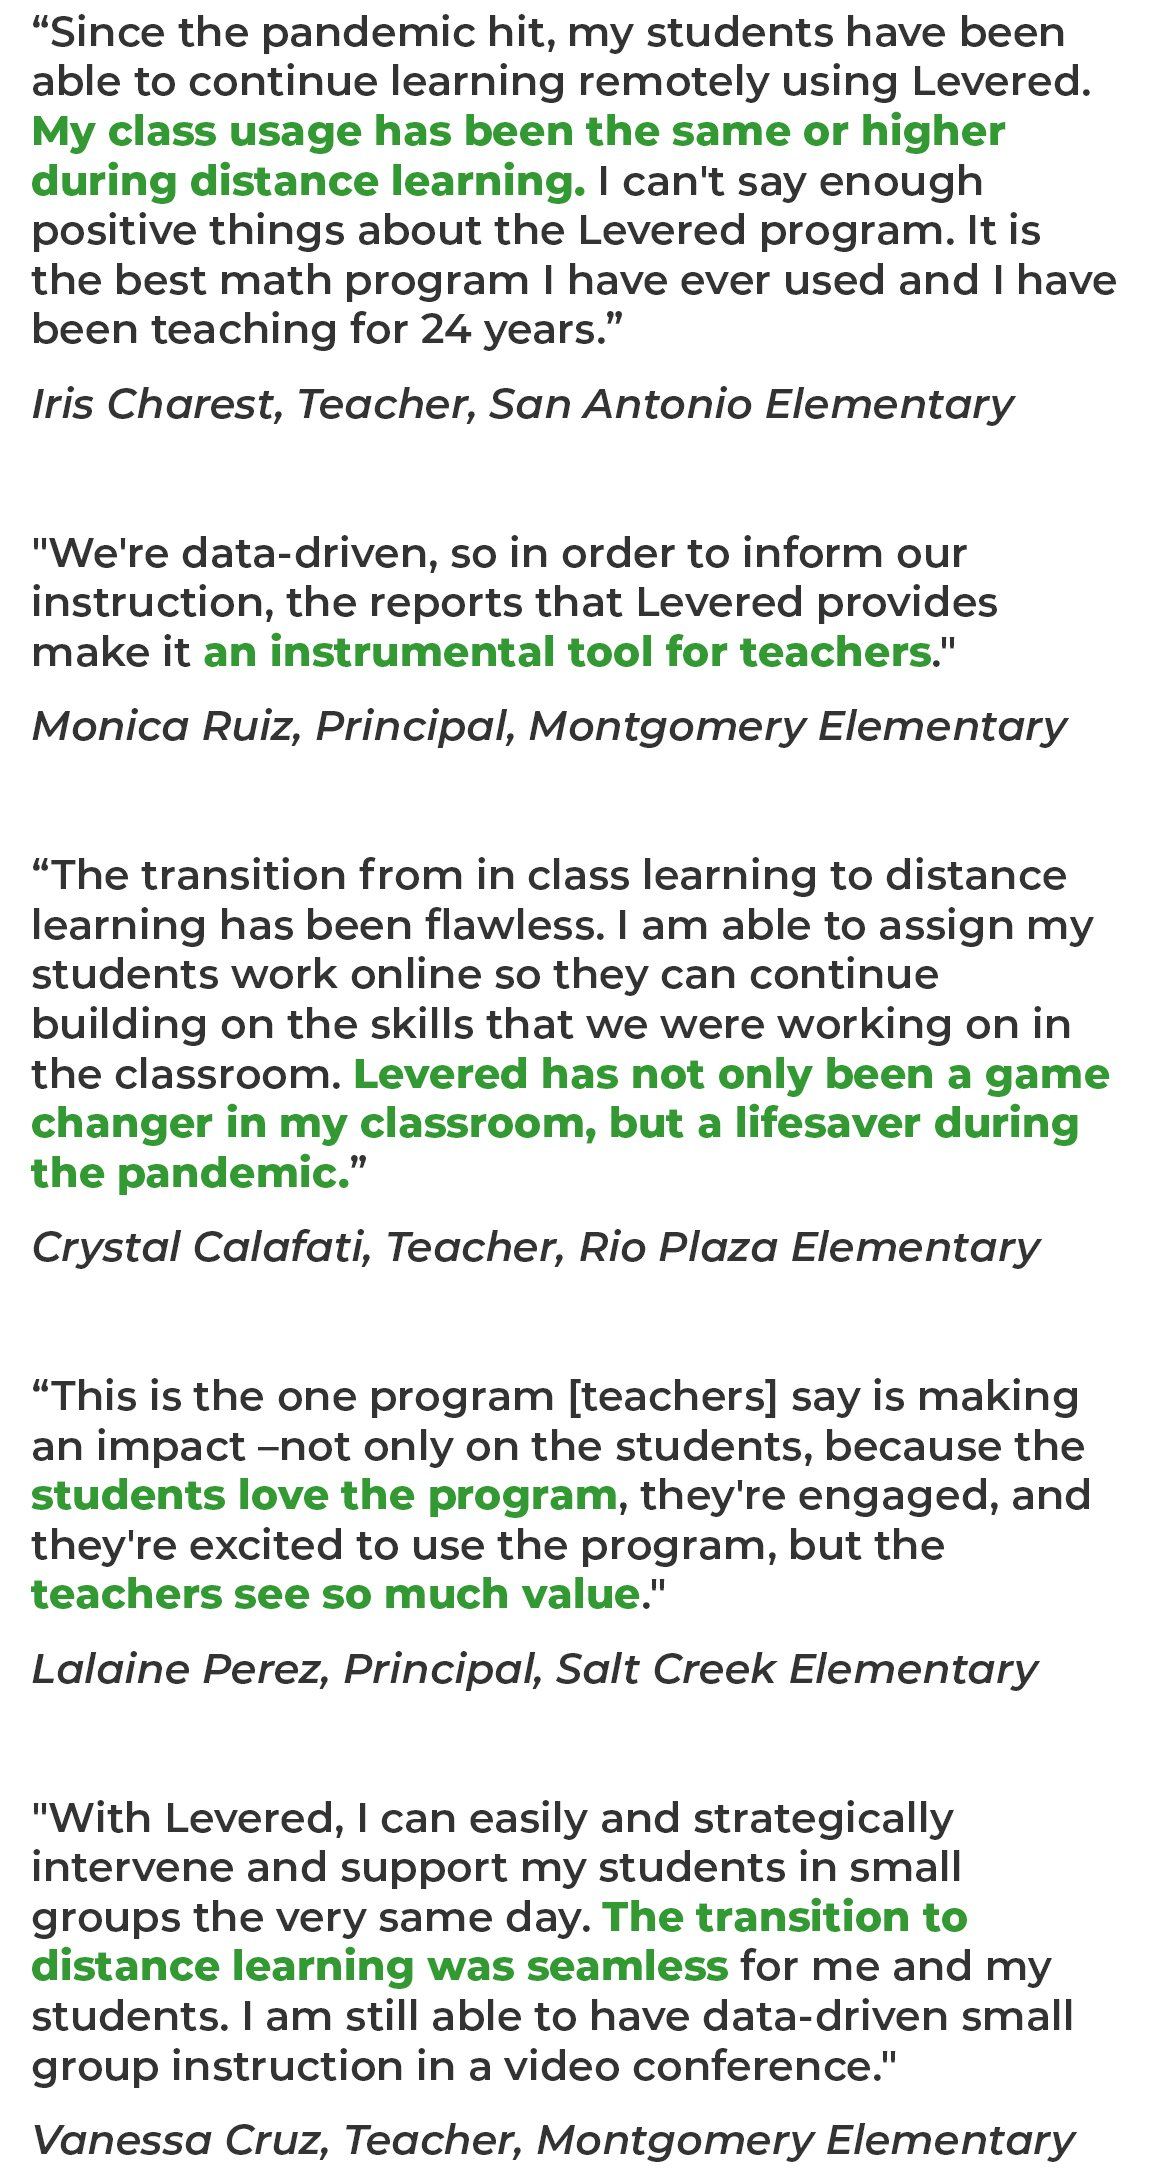 Testimonial quotes from teachers, and principals